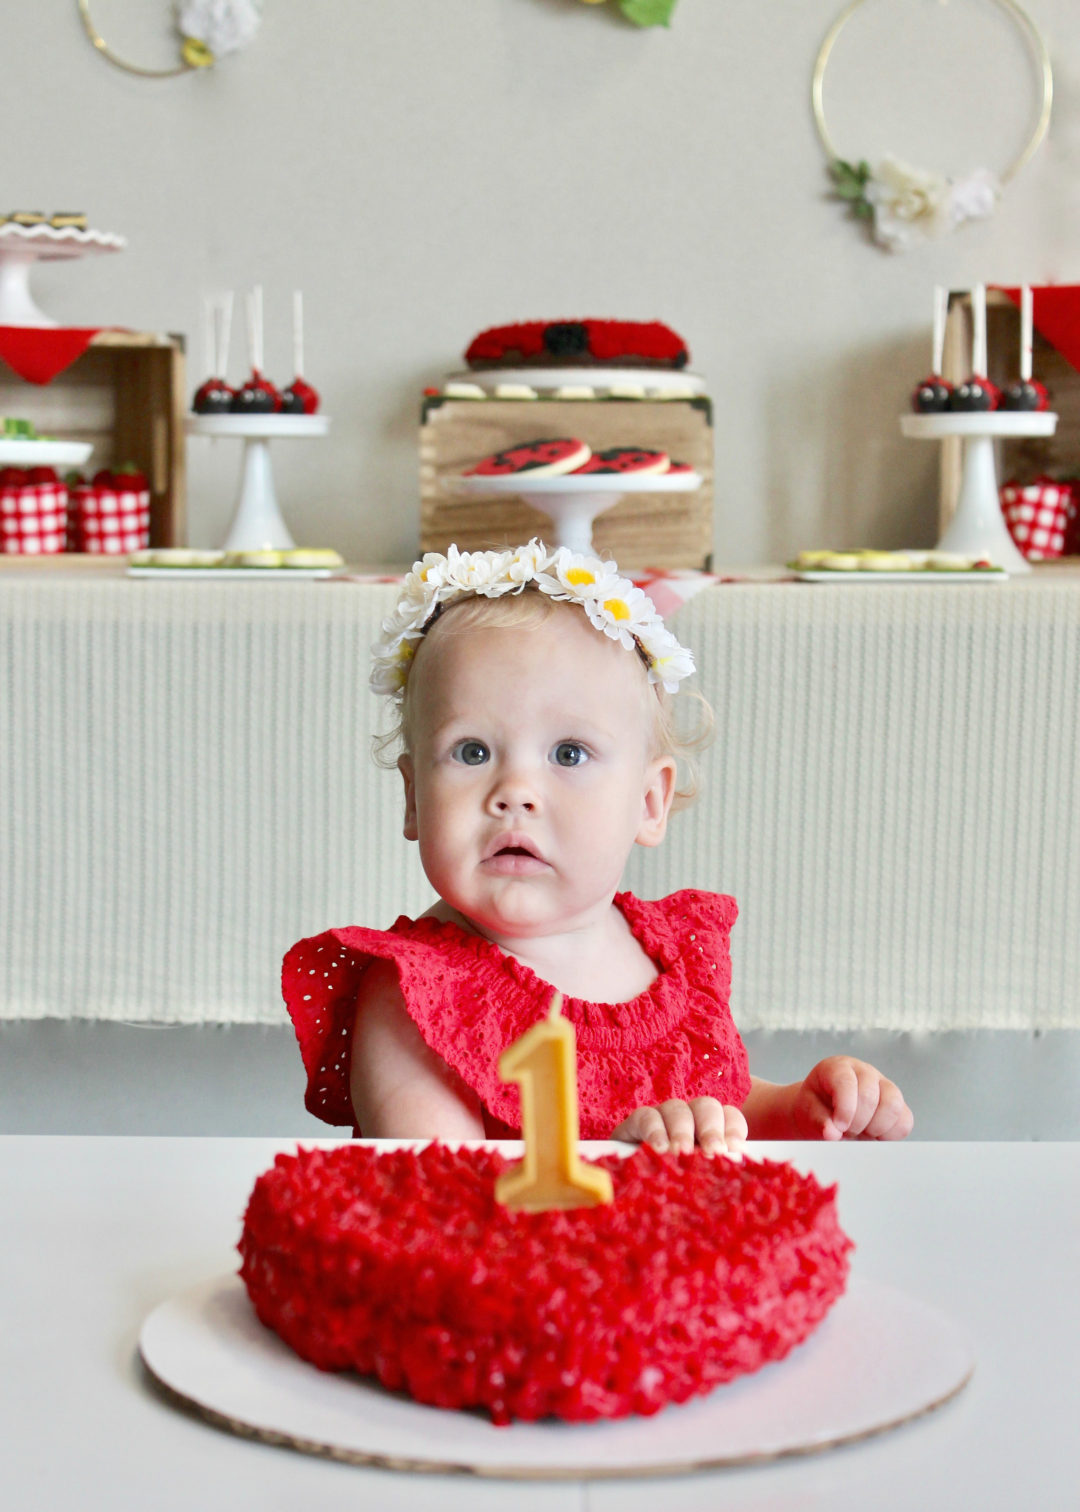 Ladybug Party | Little Lovebug Party | First Birthday Party | Girls Party Idea | Kid's Birthday | First Birthday Photos